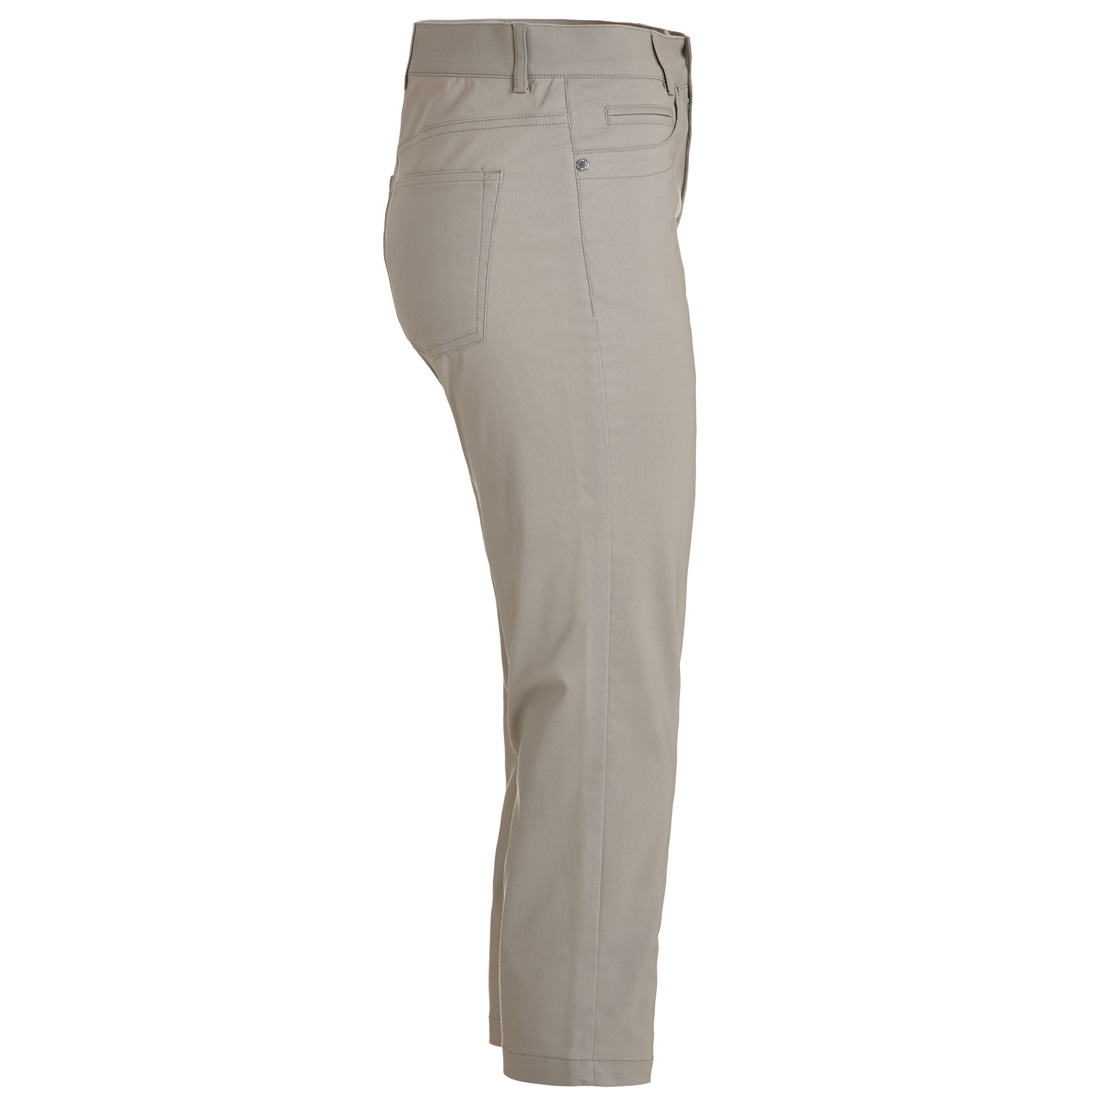 5-Pocket Trechno Stretch Capri